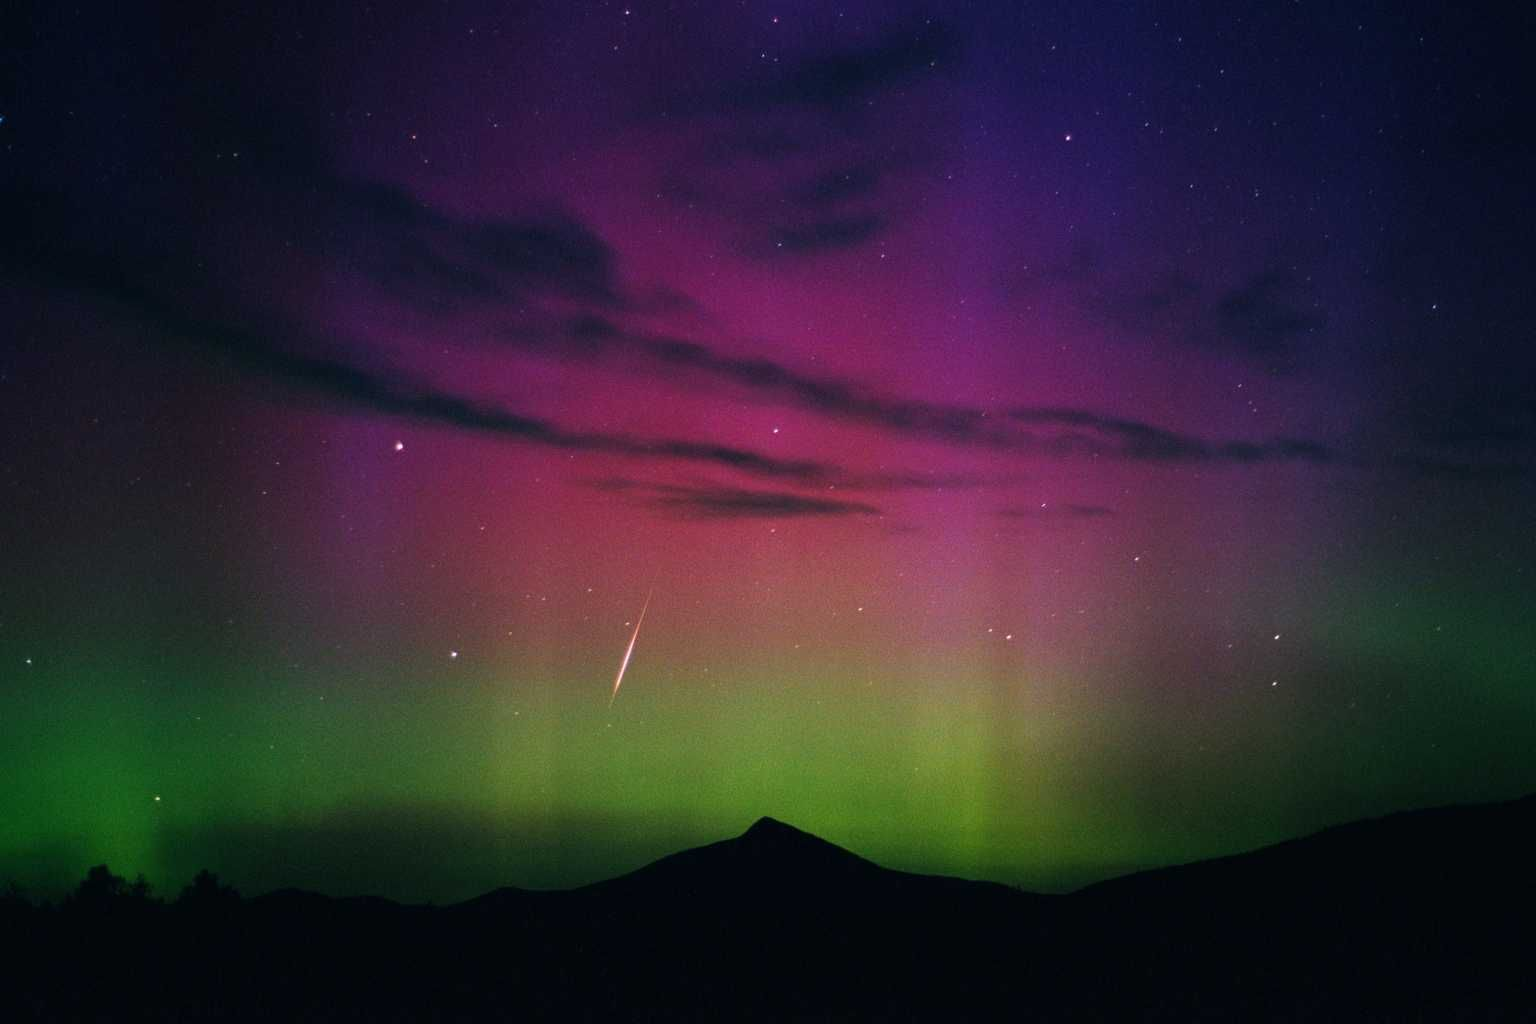 Free Meteor Shower Wallpapers Download | PowerPoint E-learning Center